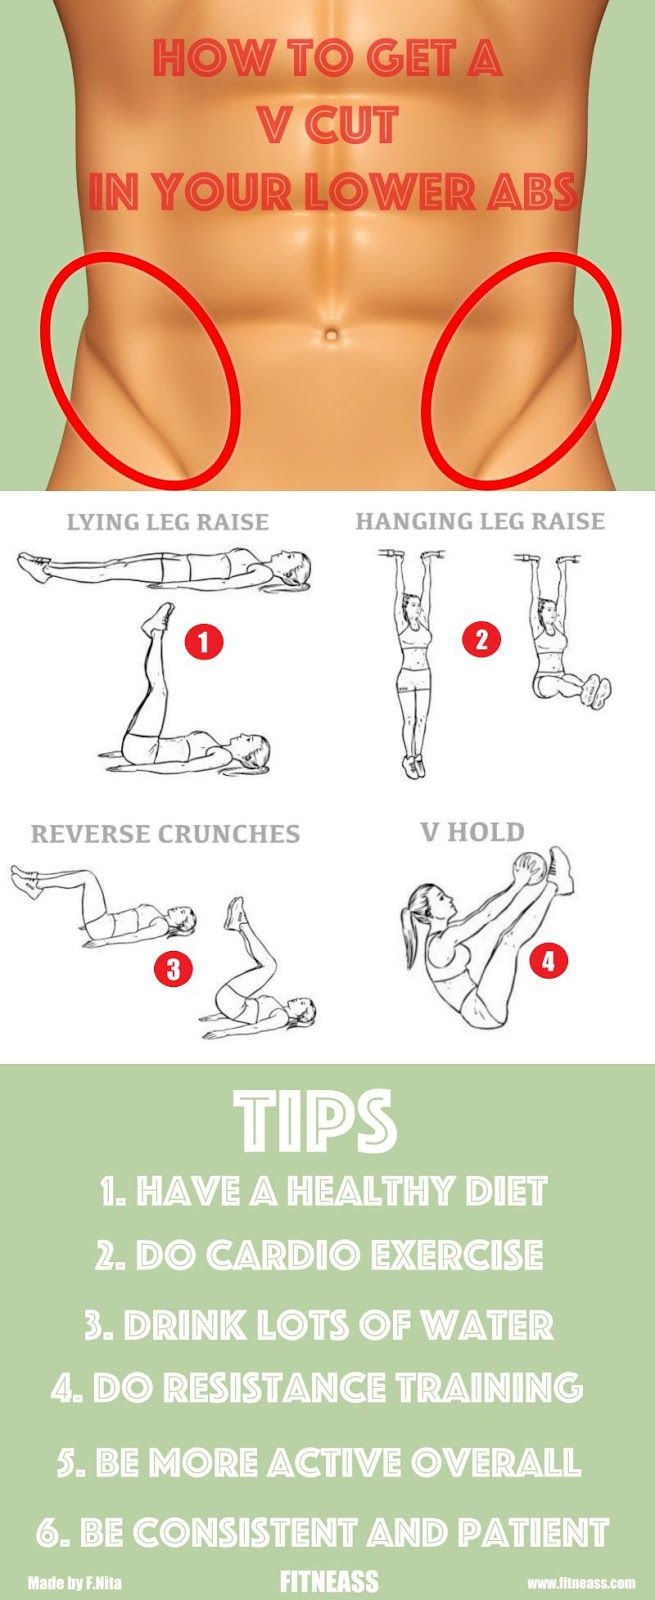 How To Get A V Cut In Your Lower Abdominal Muscles